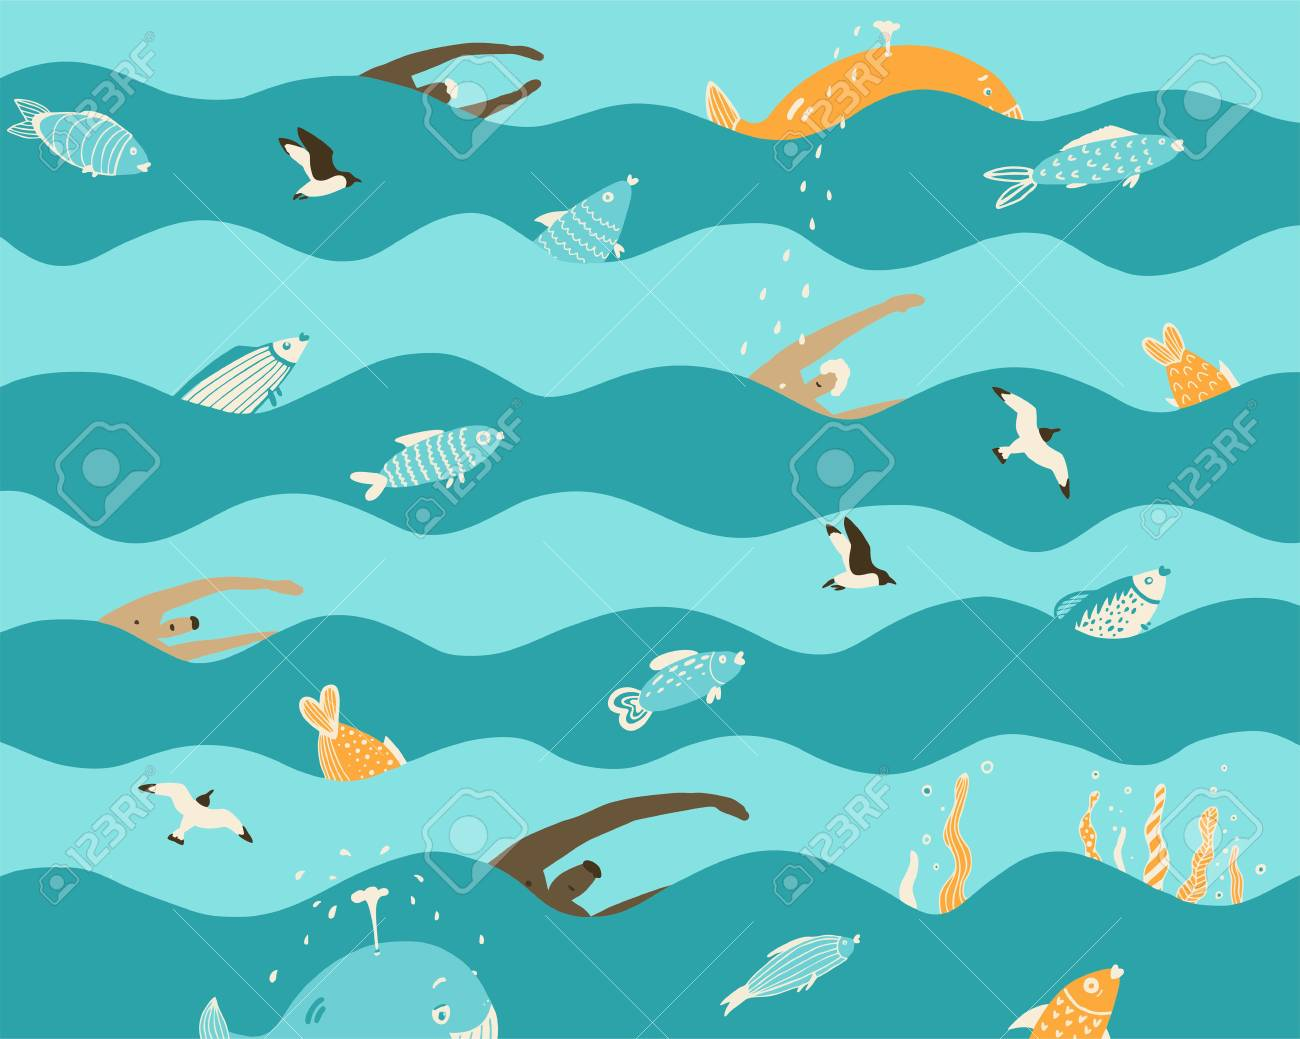 Men Swim In The Sea On The Waves With Fish And Whales Seagulls